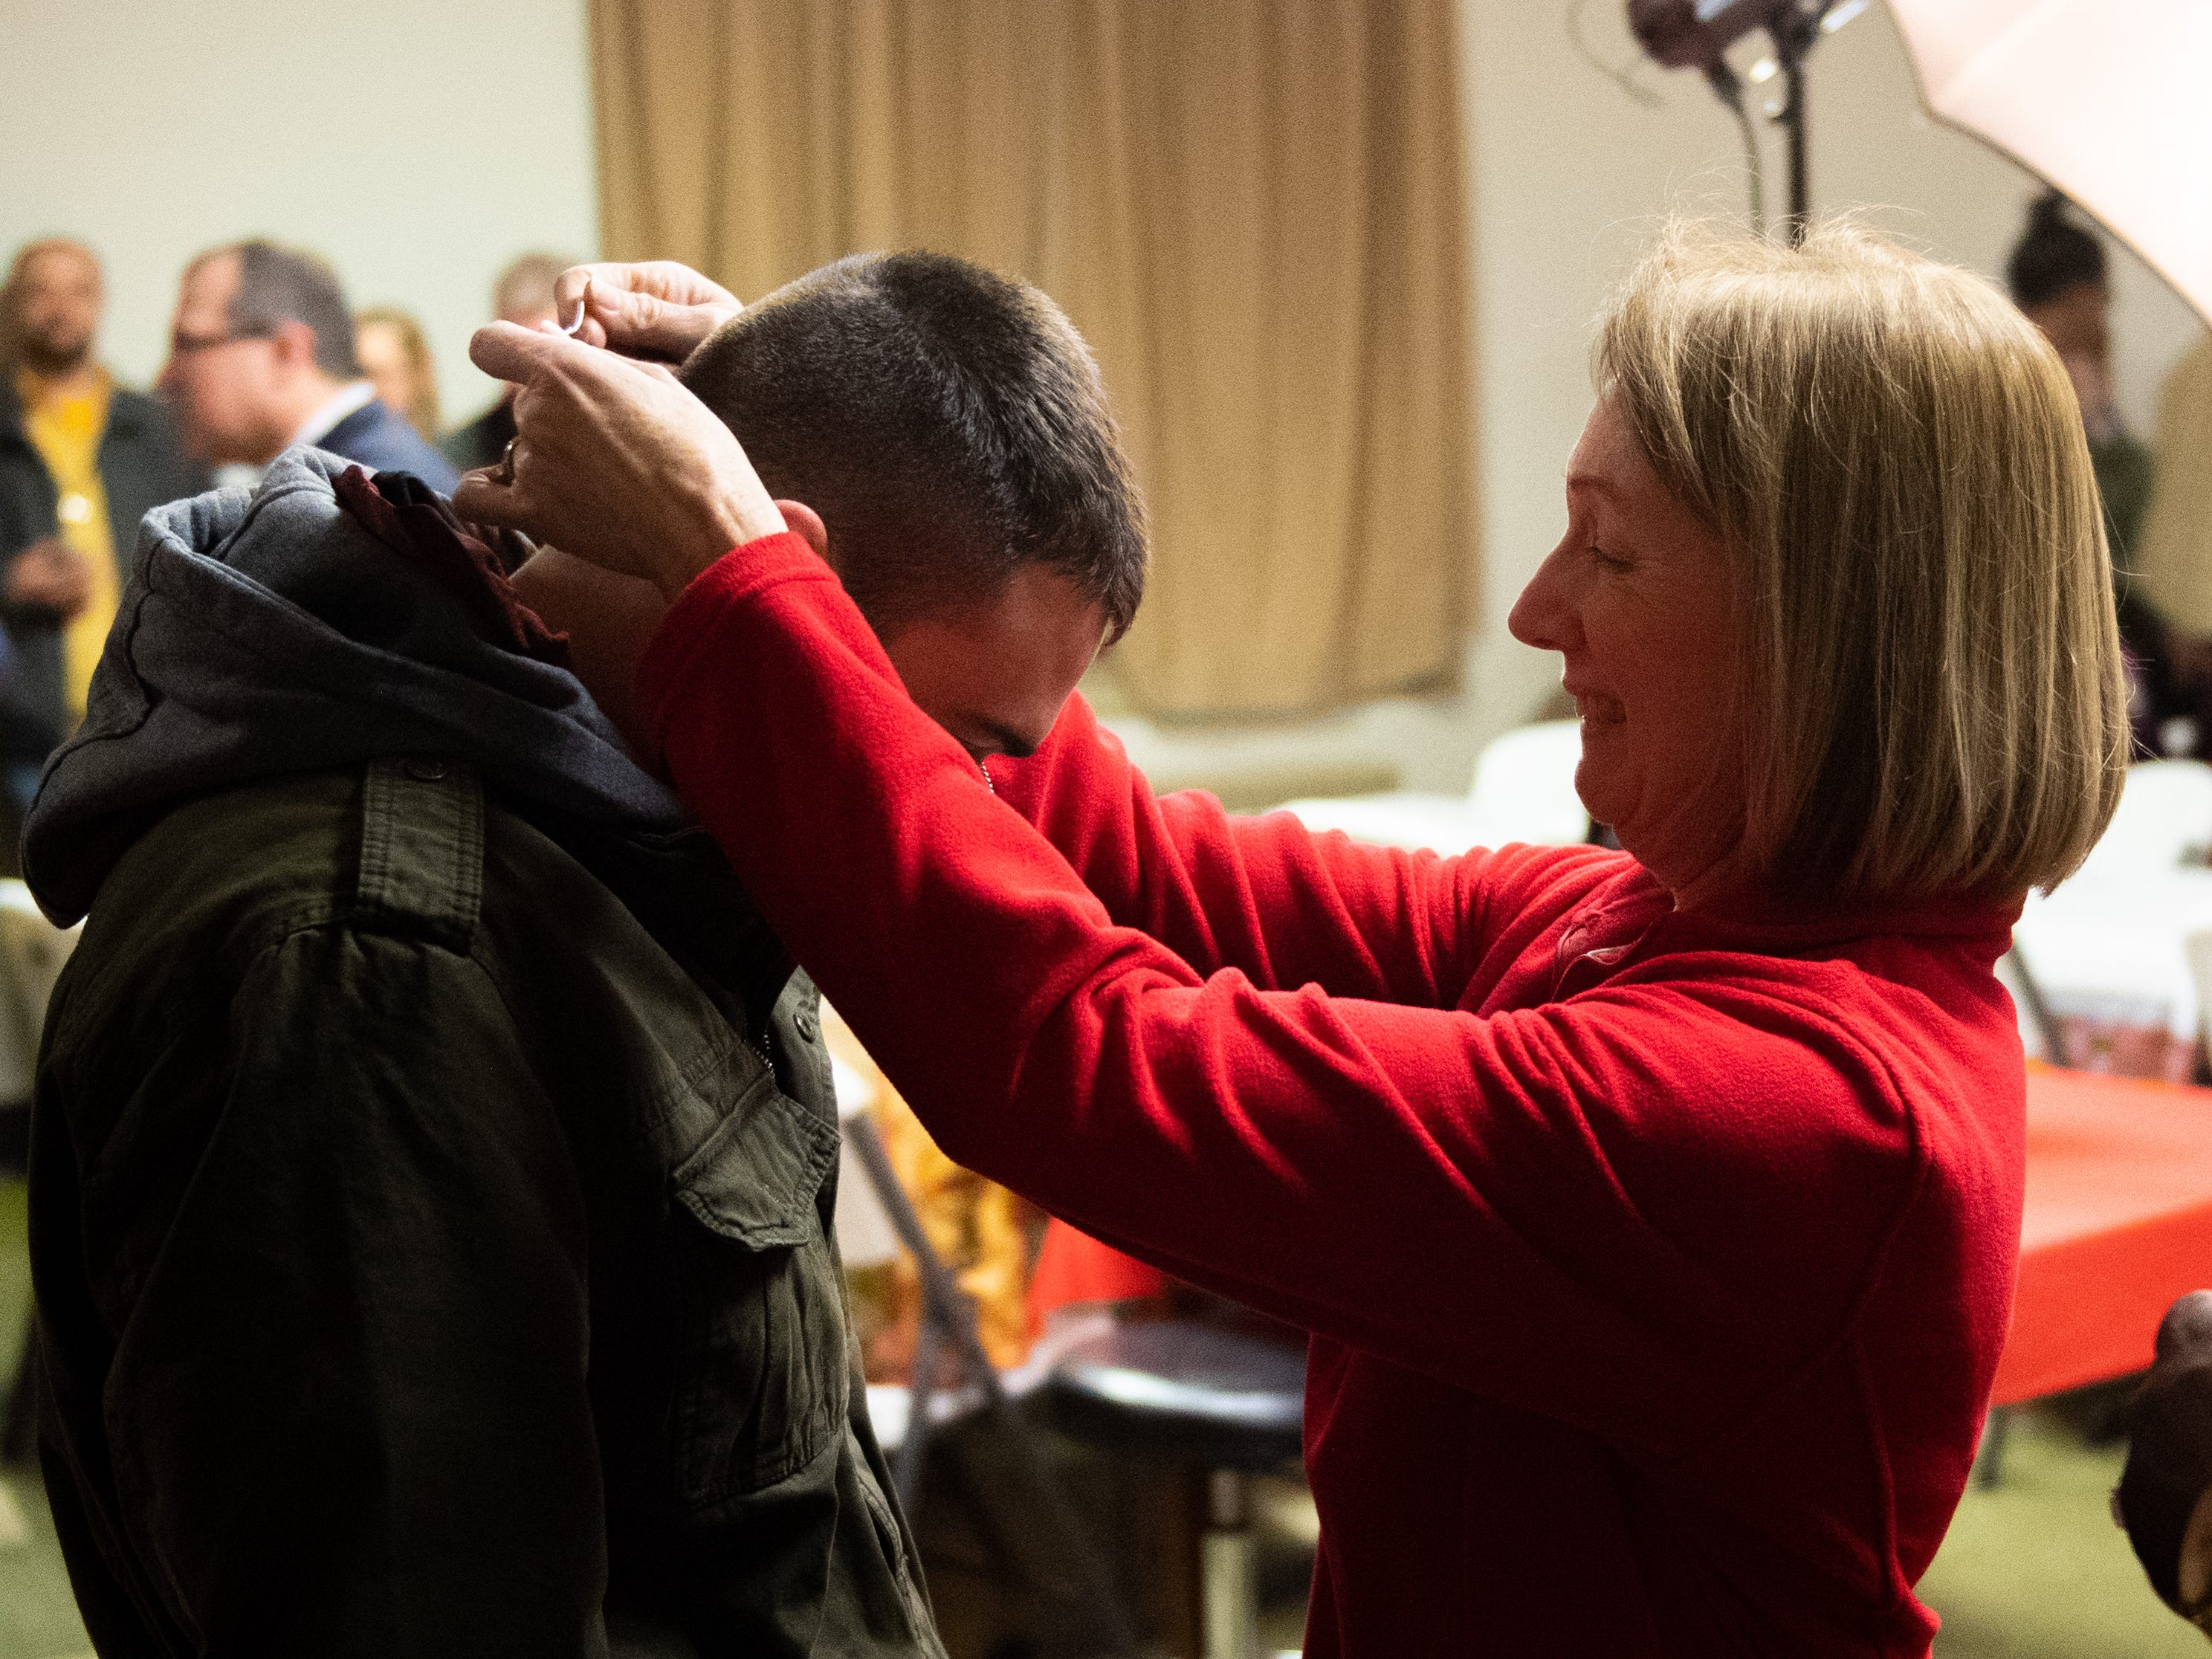 Beth Beecher places dog tags around a firefighter's neck, December 13, 2018.